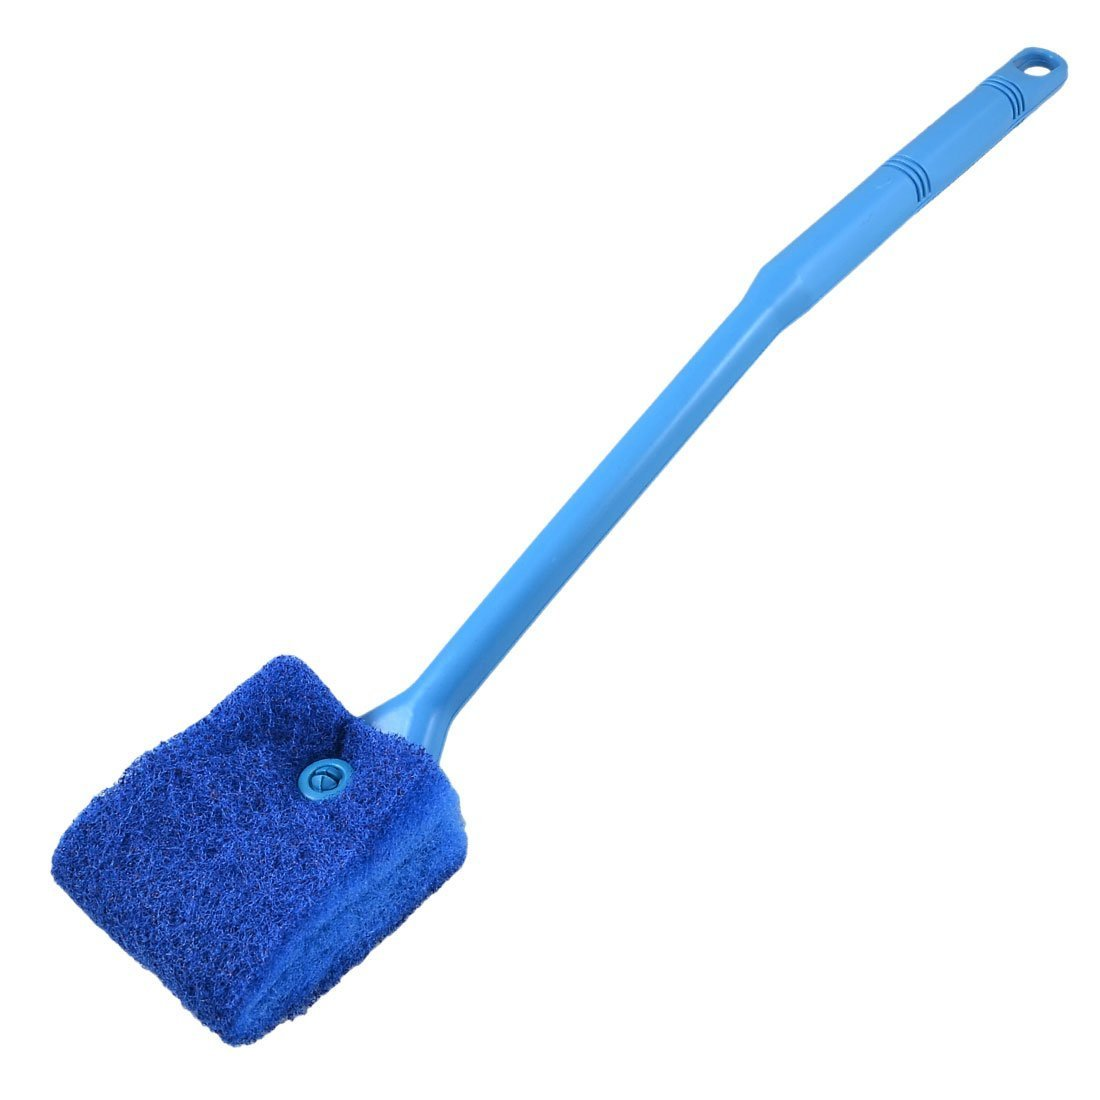 WAF Double Sided Sponge Cleaning Brush Cleaner Scrubber Yale, Blue